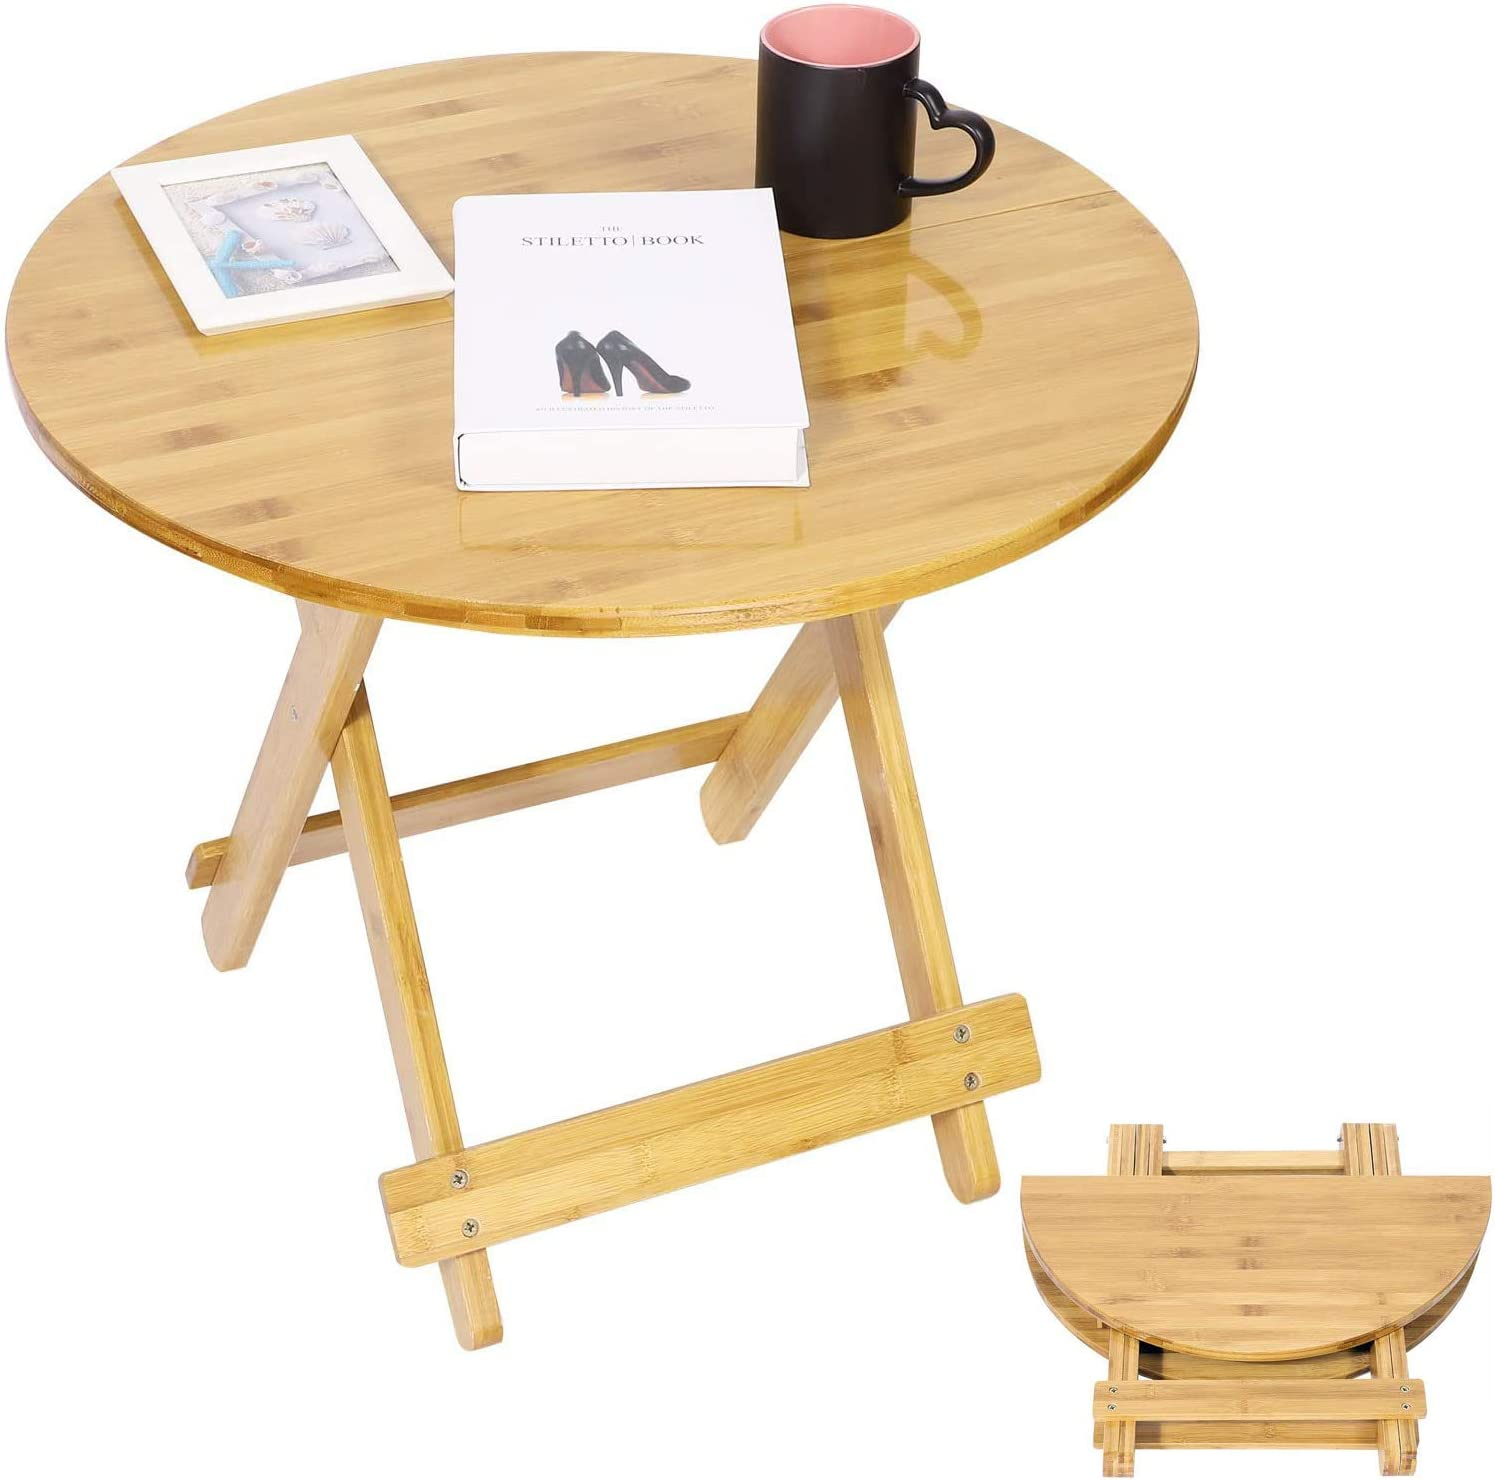 Round Wooden Folding Dining Table Portable Foldable Indoor Home Party BBQ Camping Gaming Table for Beach Outdoor Picnic Patio Garden Cooking